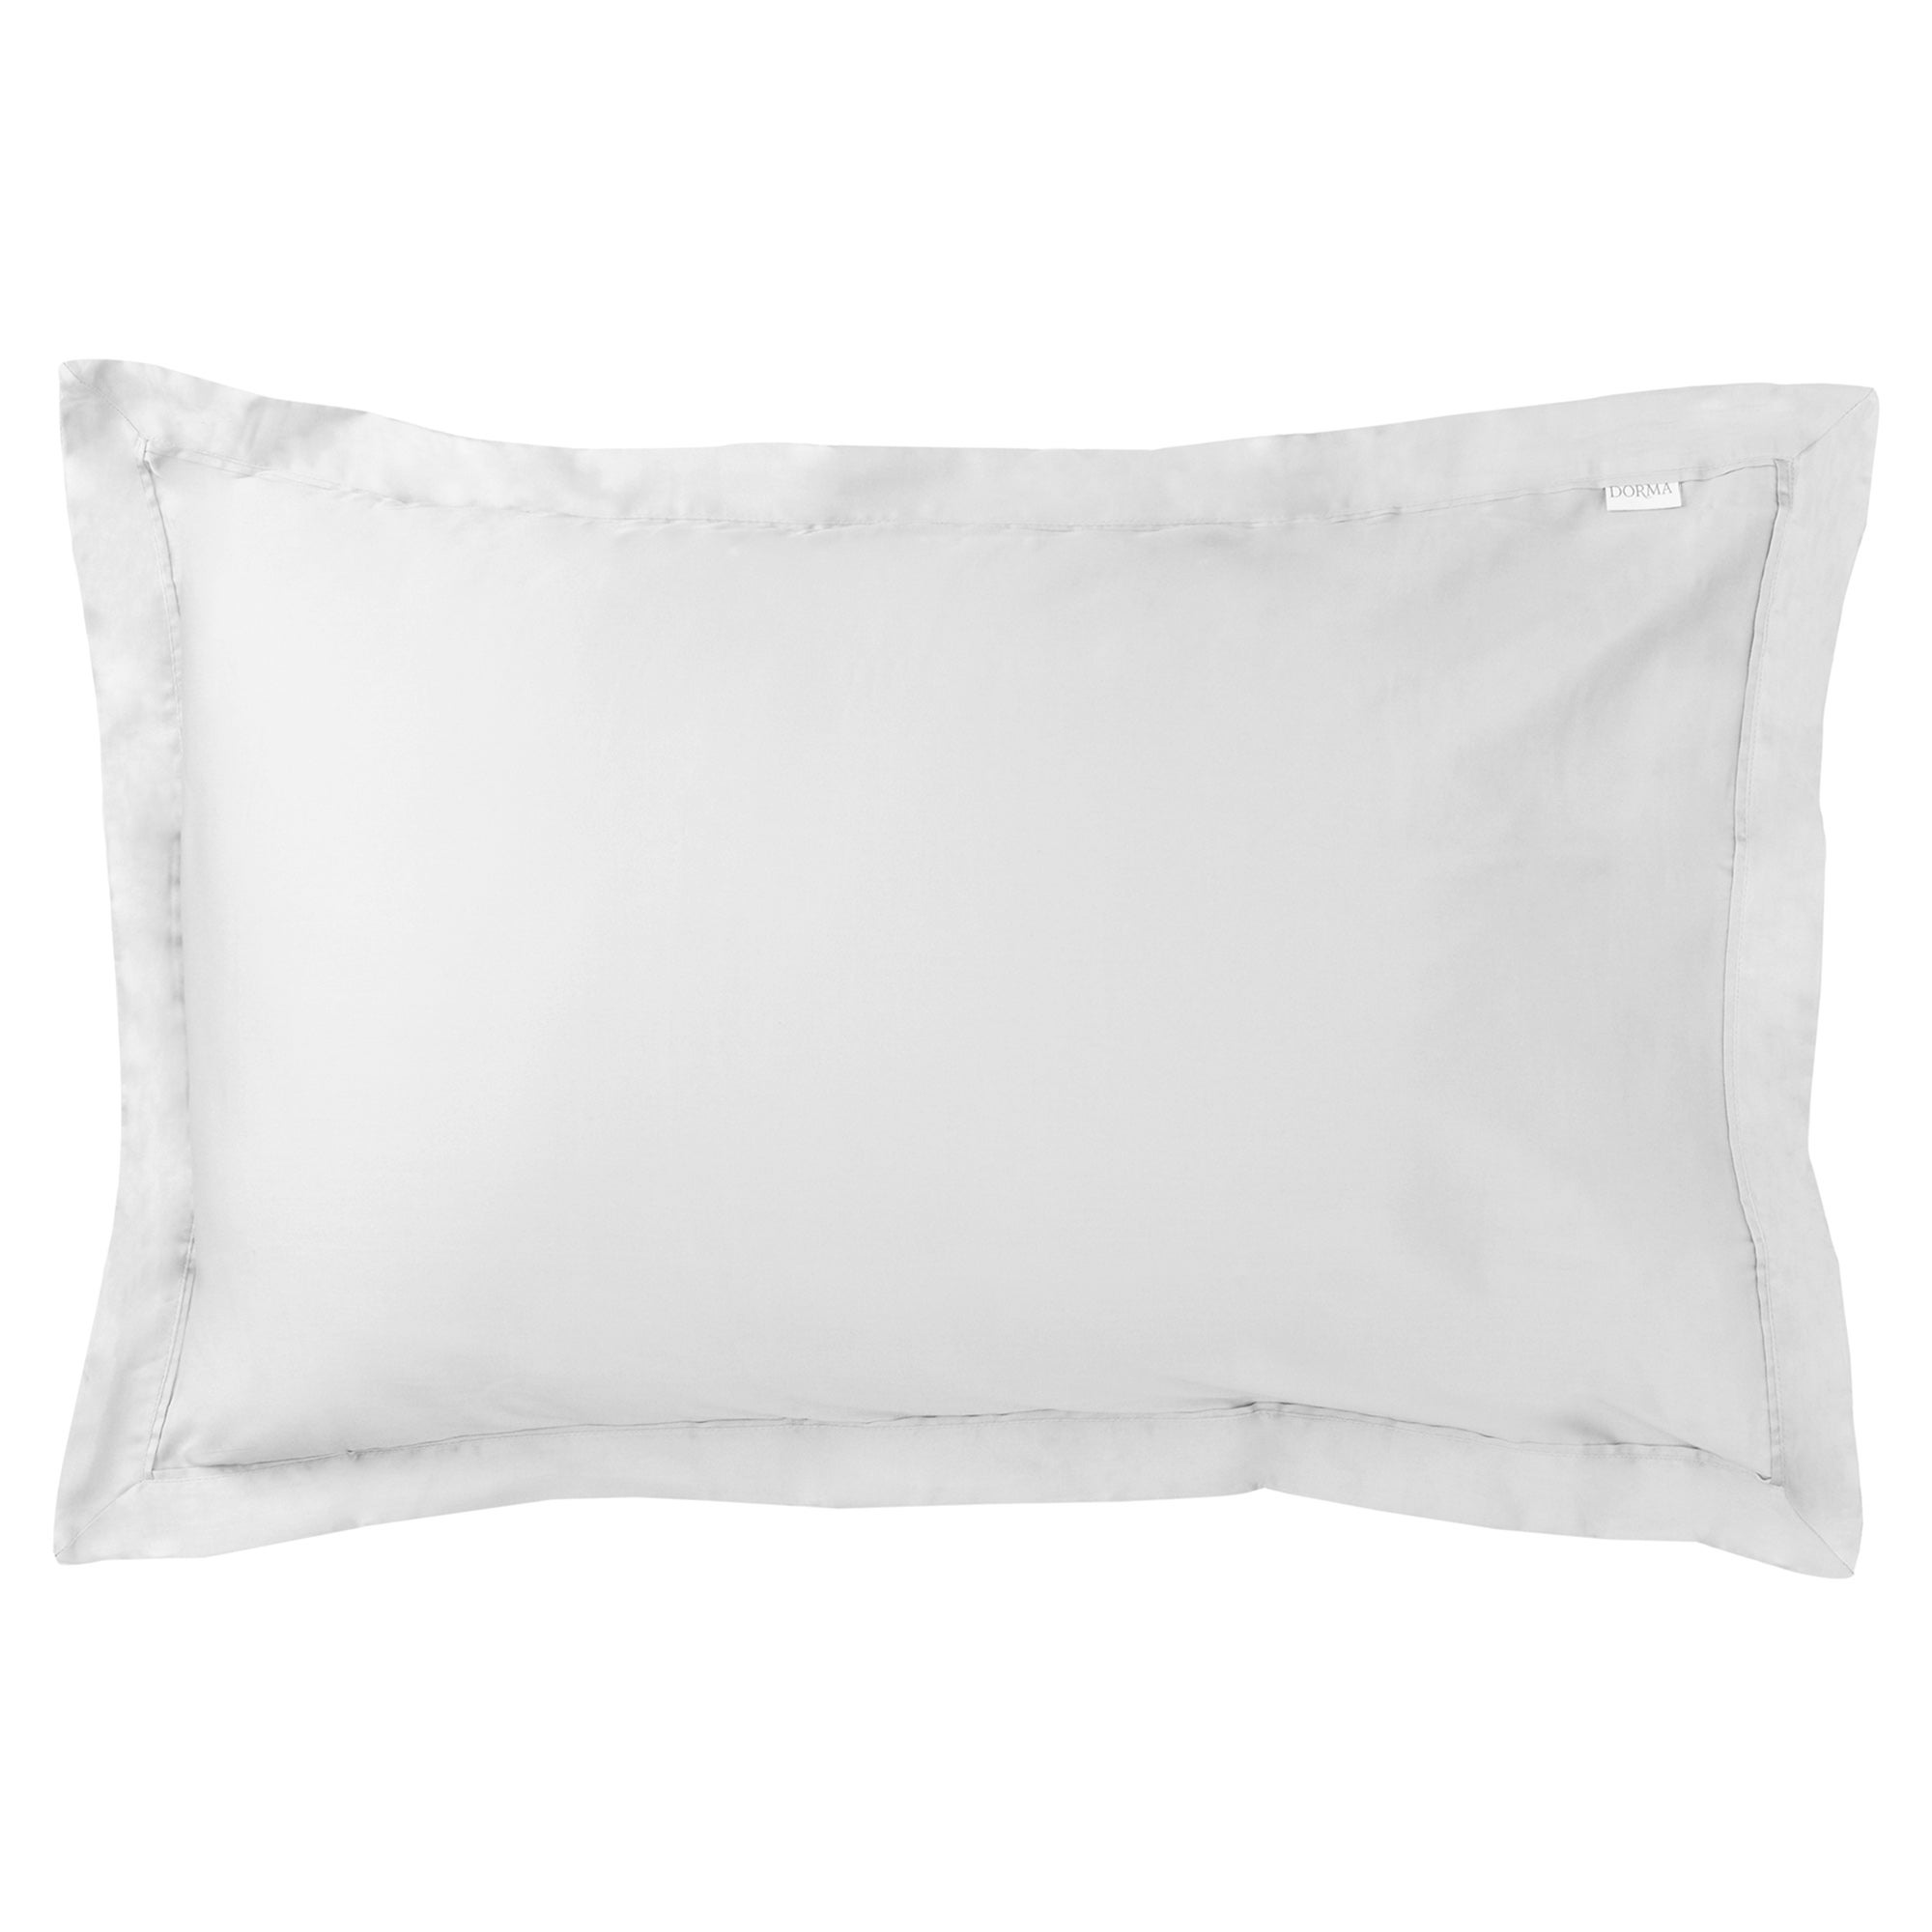 Dorma 350 Thread Count Plain Dye Collection Oxford Pillowcase